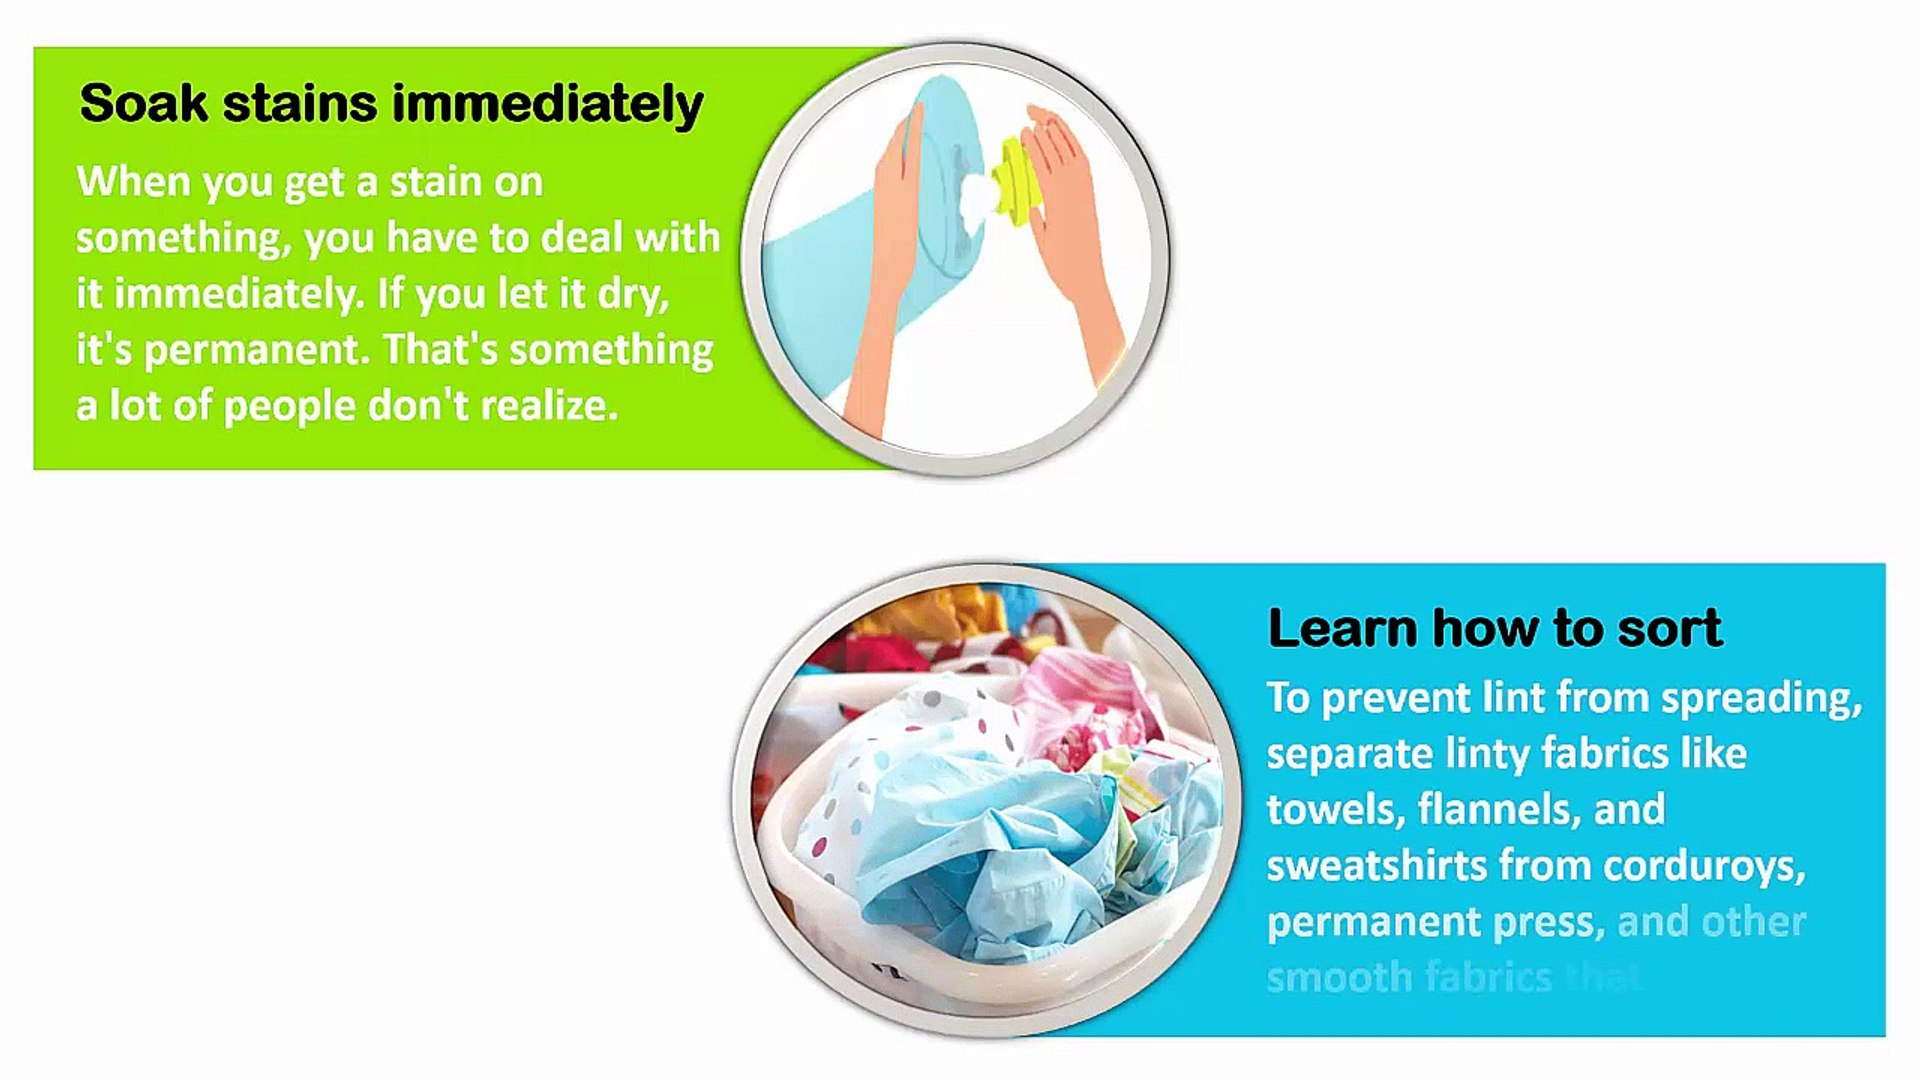 8 Laundry Tips for Clean ClothesLaundry Tips for Cleaning Clothes